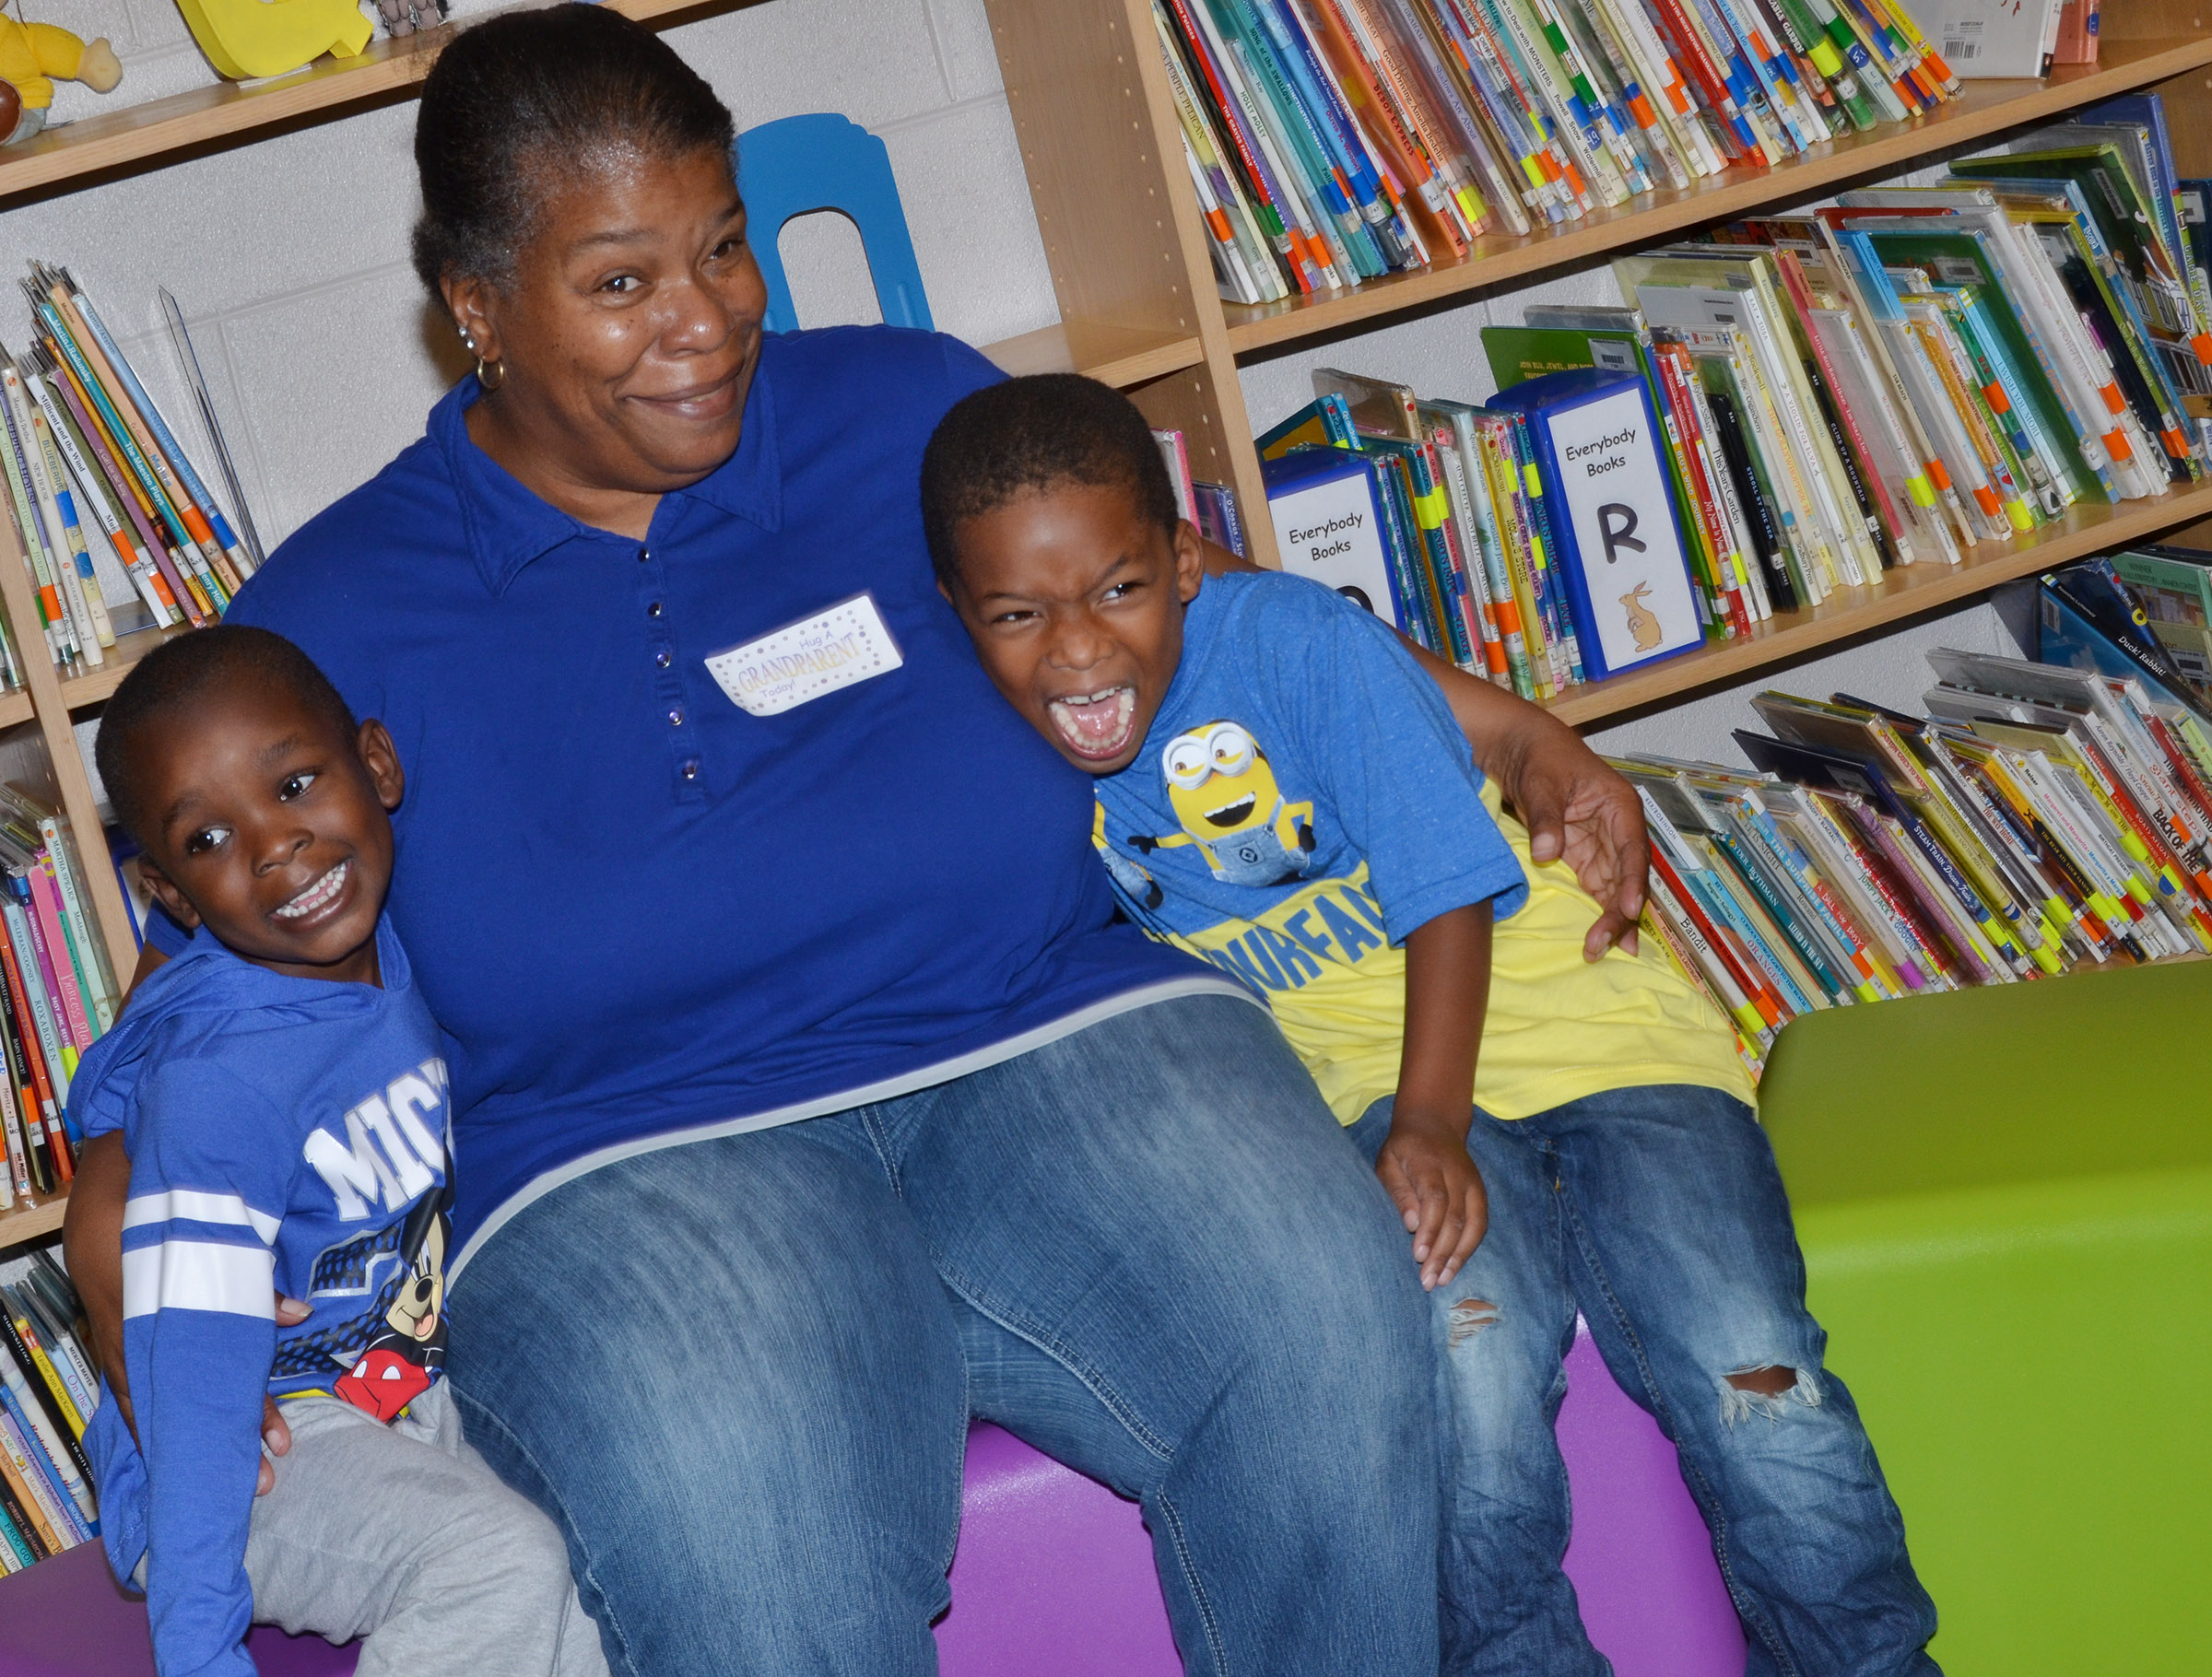 CES preschool student Xavien Smith, at left, and Kaiyden Vancleave smile for a photo with their grandmother.